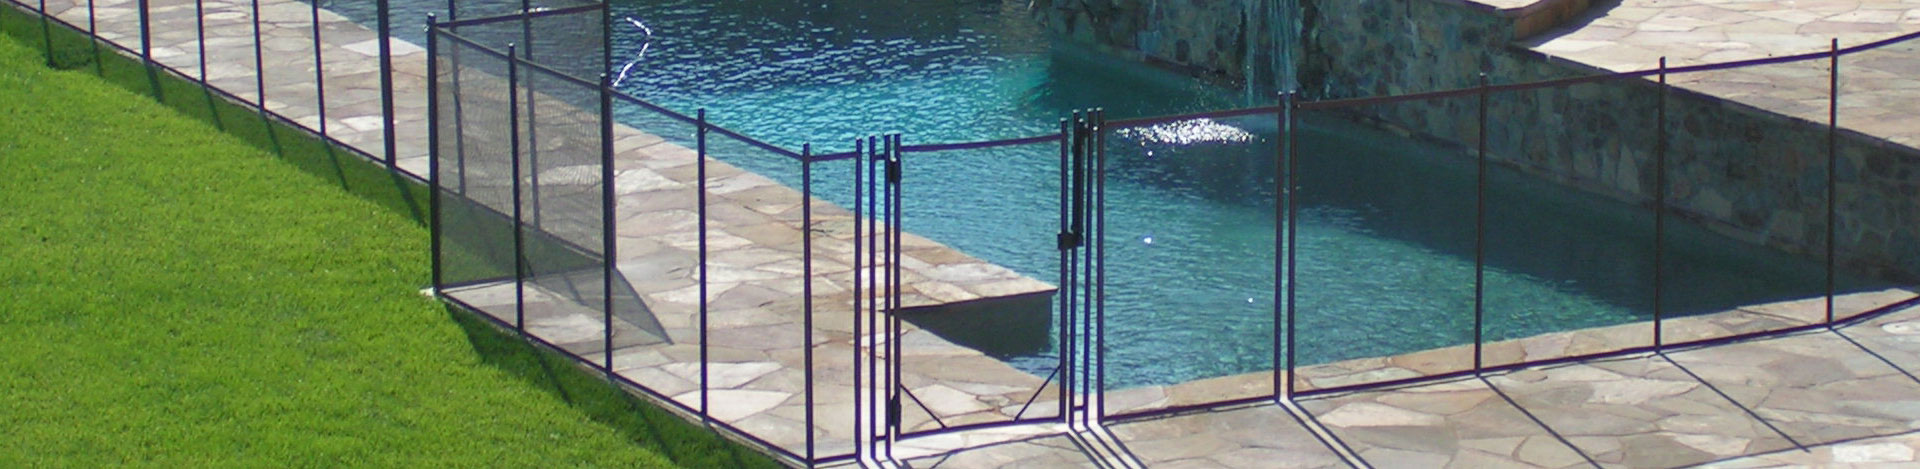 Swimming Pool Safety Requirements In California 2018